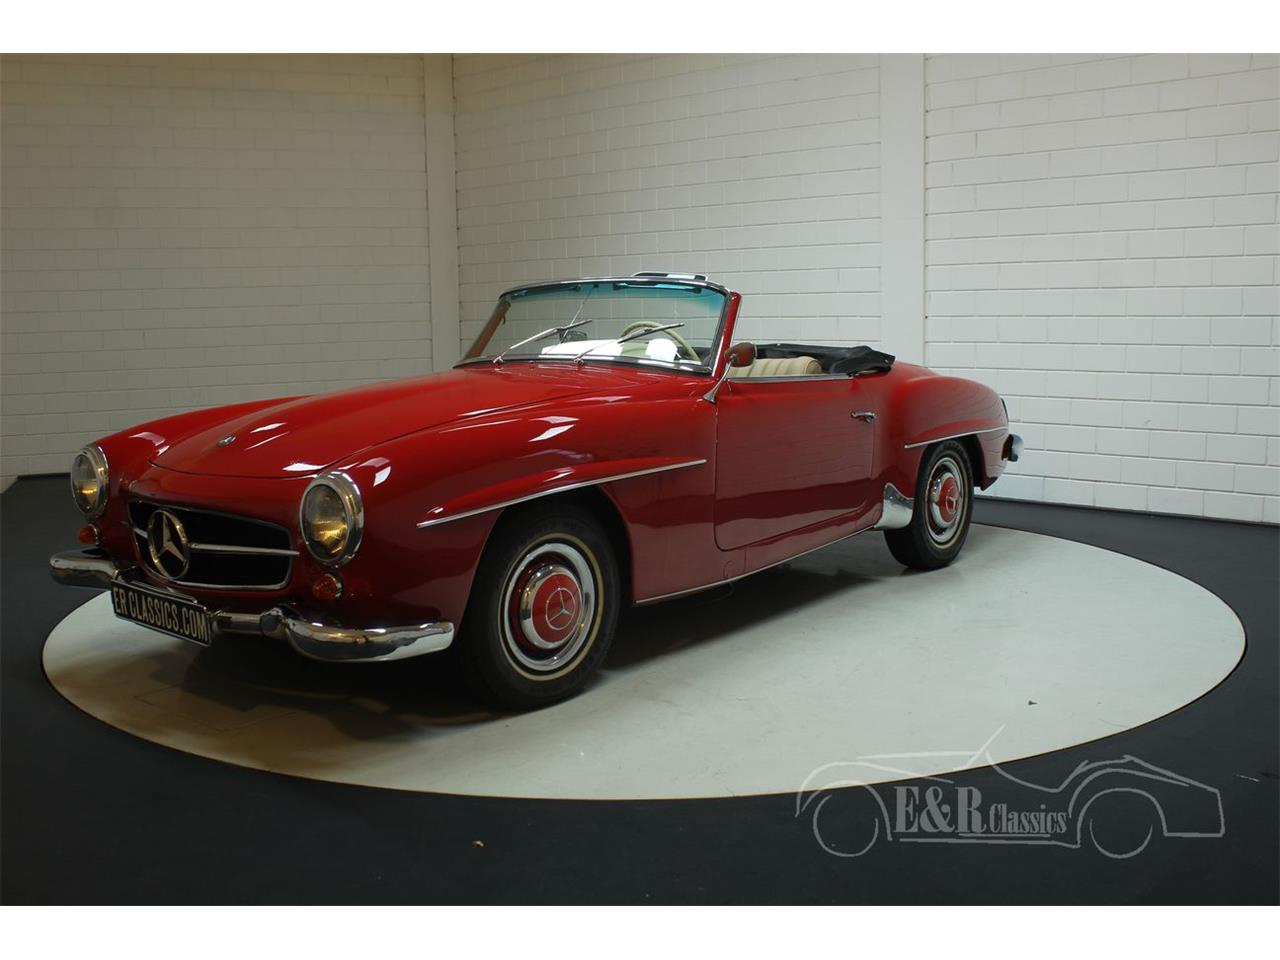 Large Picture of Classic 1956 Mercedes-Benz 190SL located in - Keine Angabe - - $118,450.00 - PH44